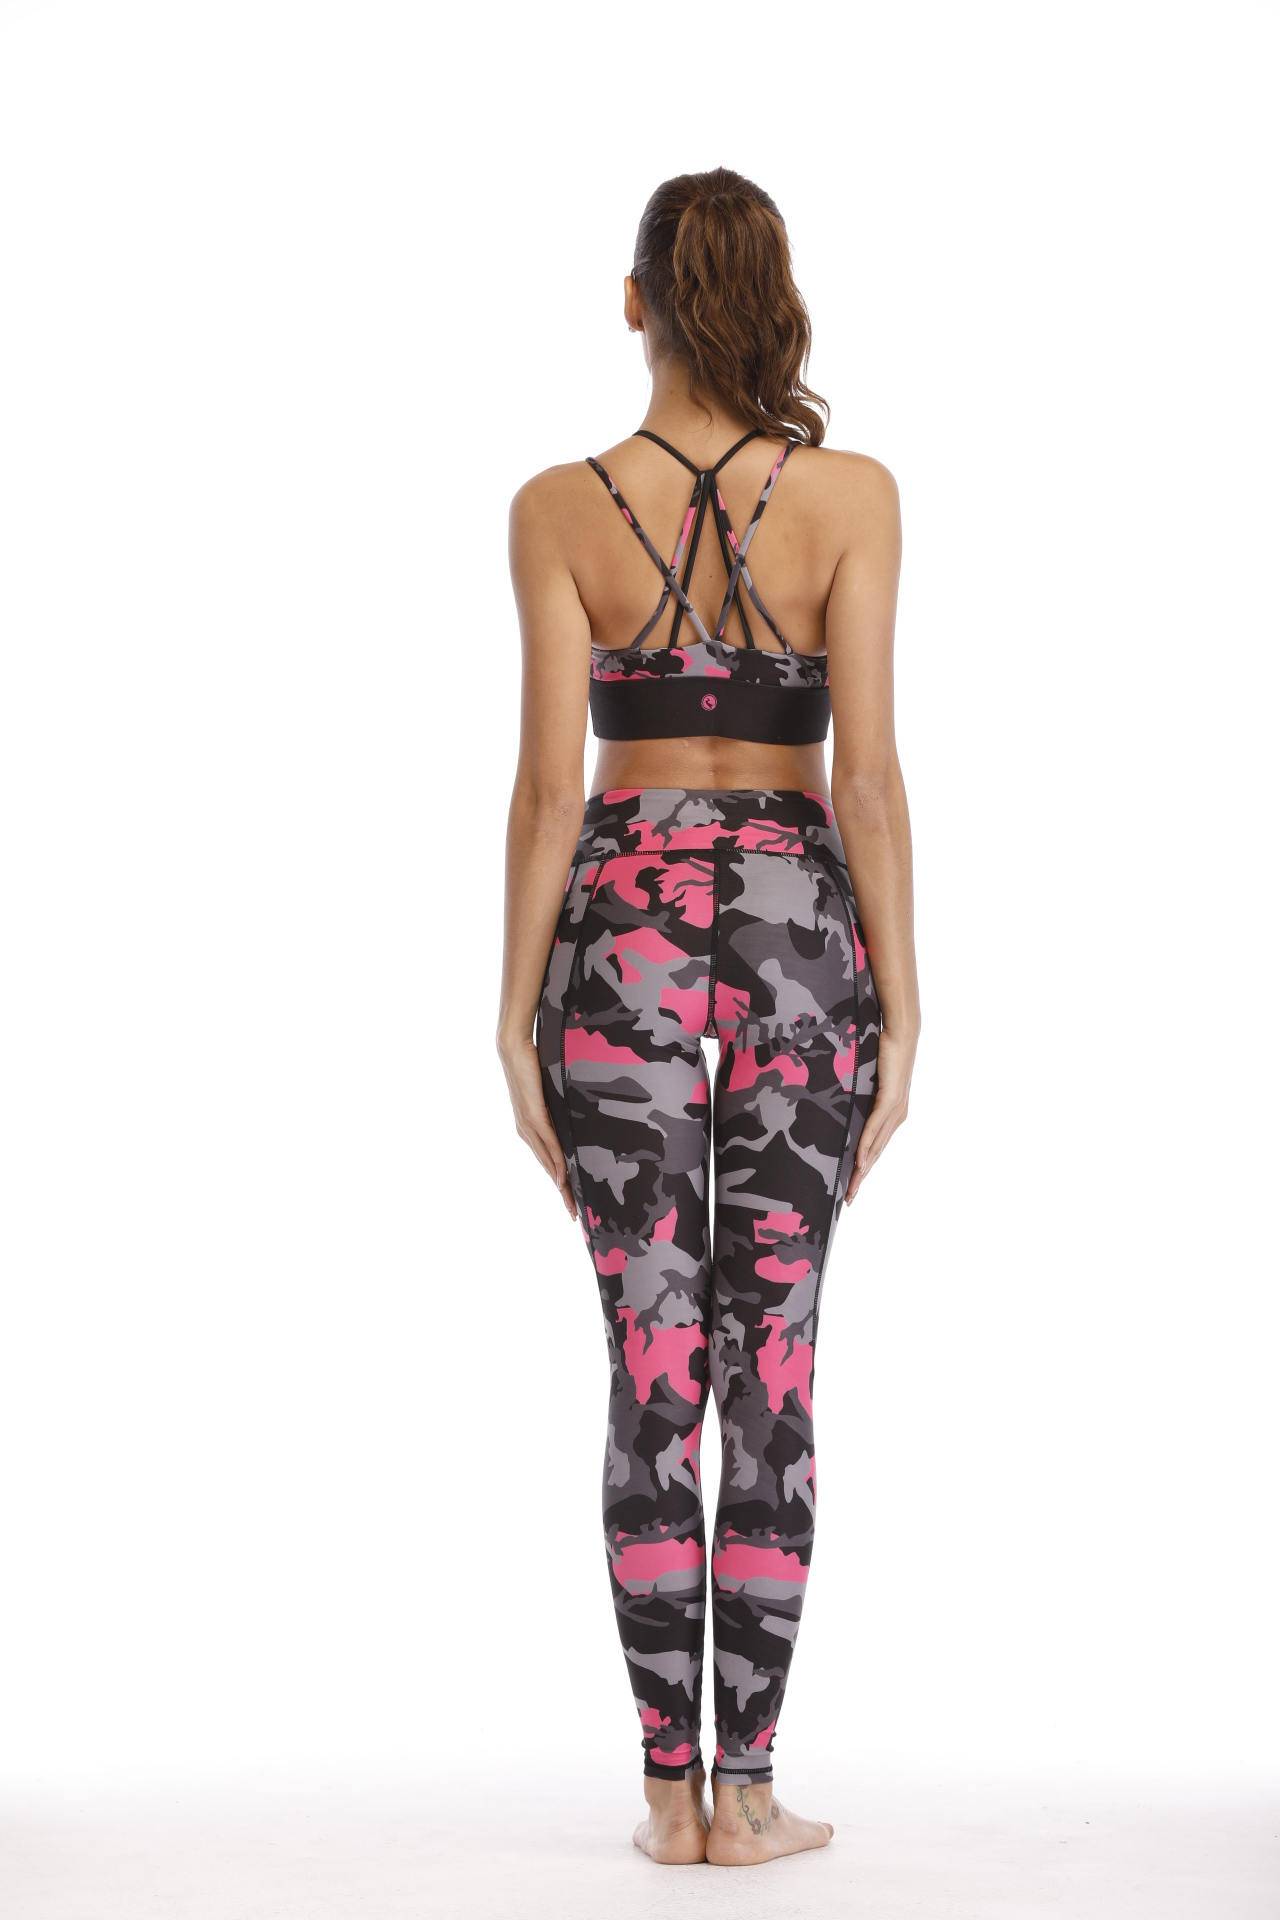 Girls Printed Fitness Wear Sports Bra And Leggings With Back